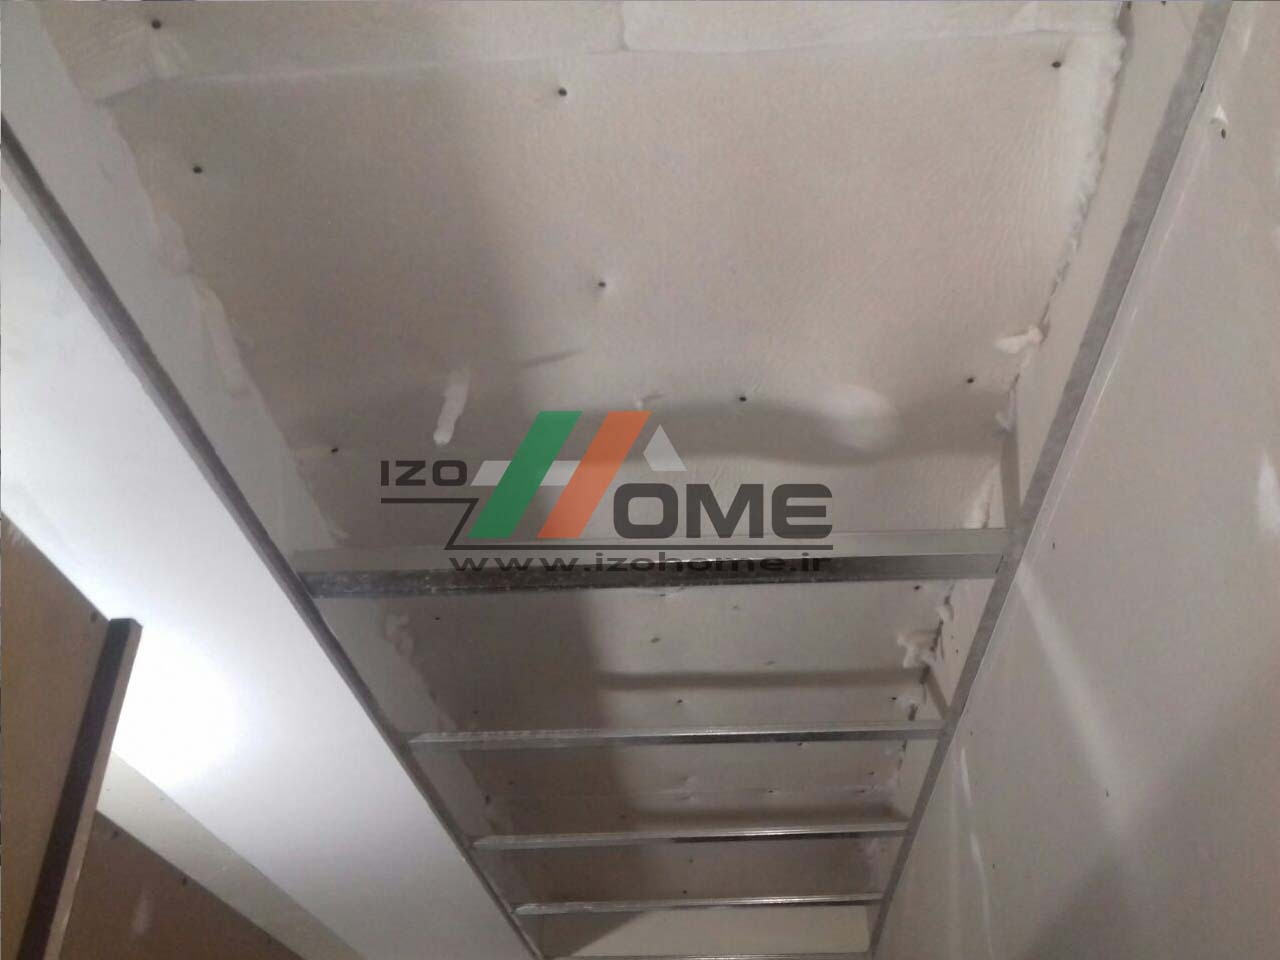 izohome76 - Thermal insulation for the roof